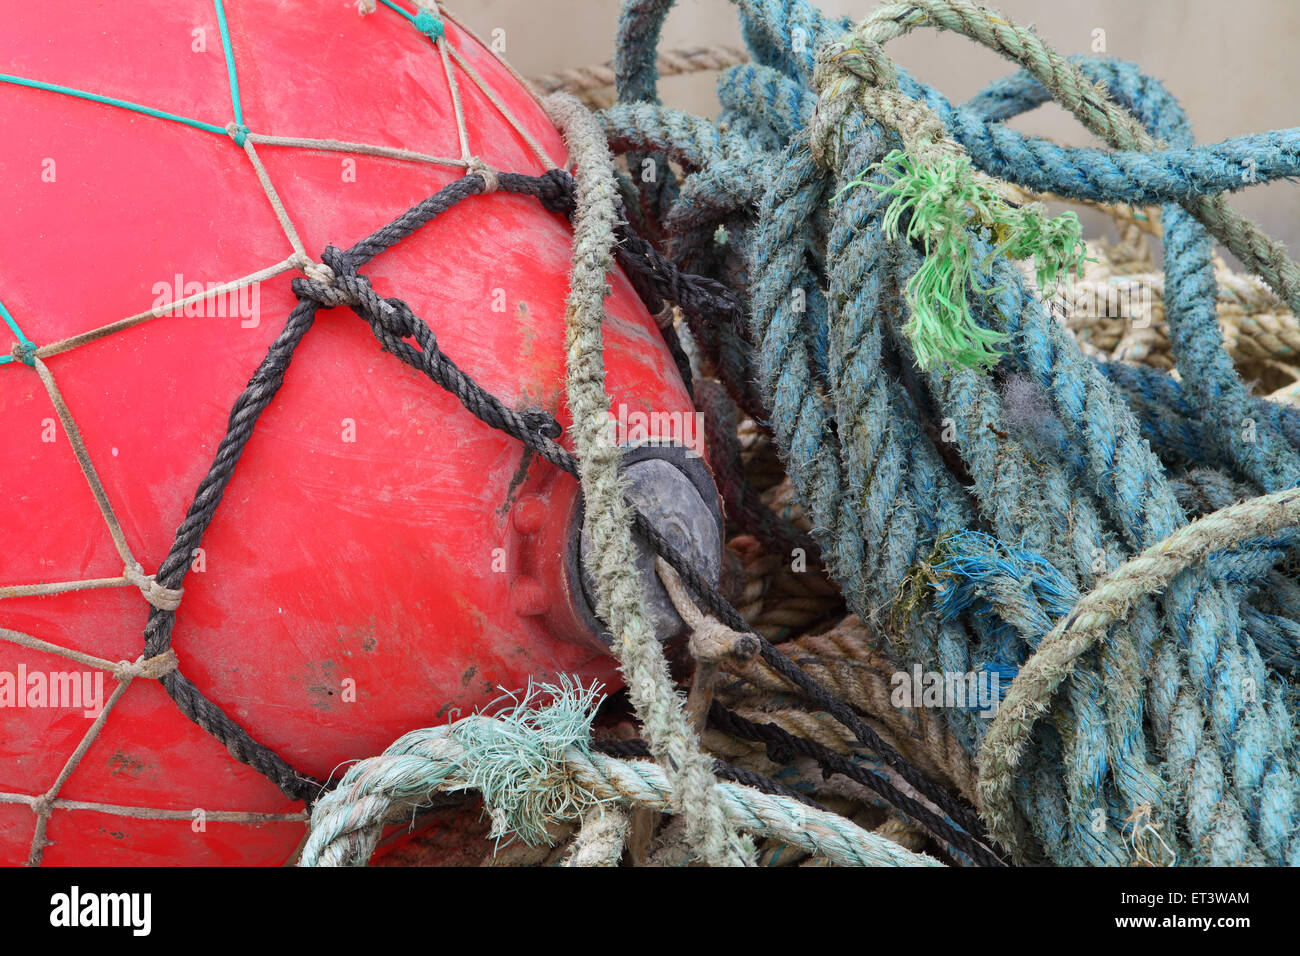 Abstract patterns and shapes in a fishing harbour - Stock Image